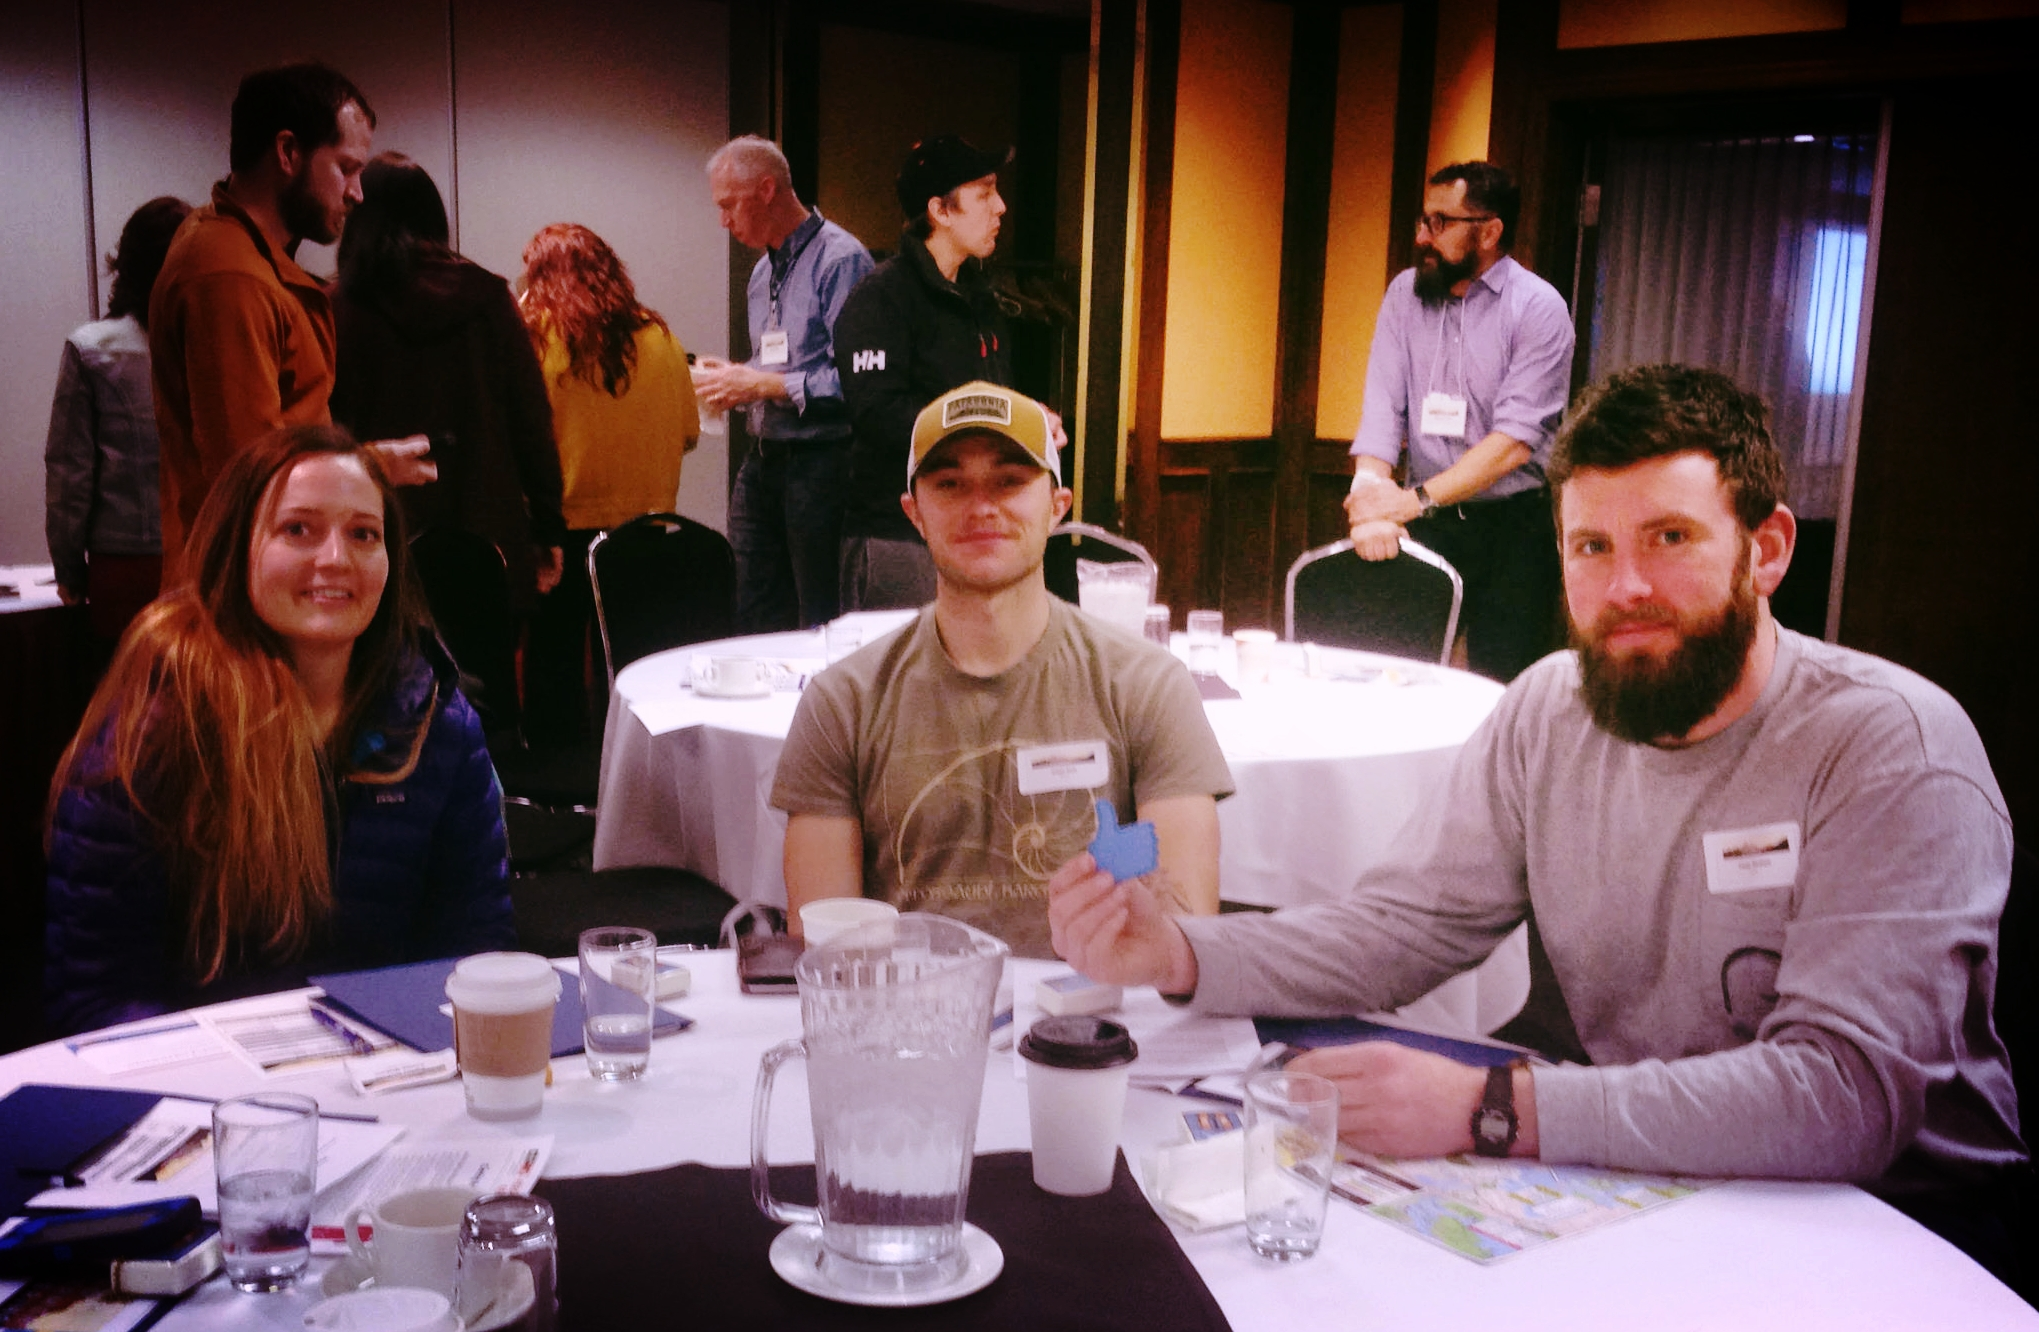 From left to right, Carina Nichols, Keith Bell and Peter Neaton. These Alaska fishermen spent 4 days in Victoria attending fish-focused meetings. The Alaska Young Fishermen's Network strives to create opportunities for young fishermen to network with fellow fishermen and fishery leaders, and be more engaged in the policy processes that shape their careers.